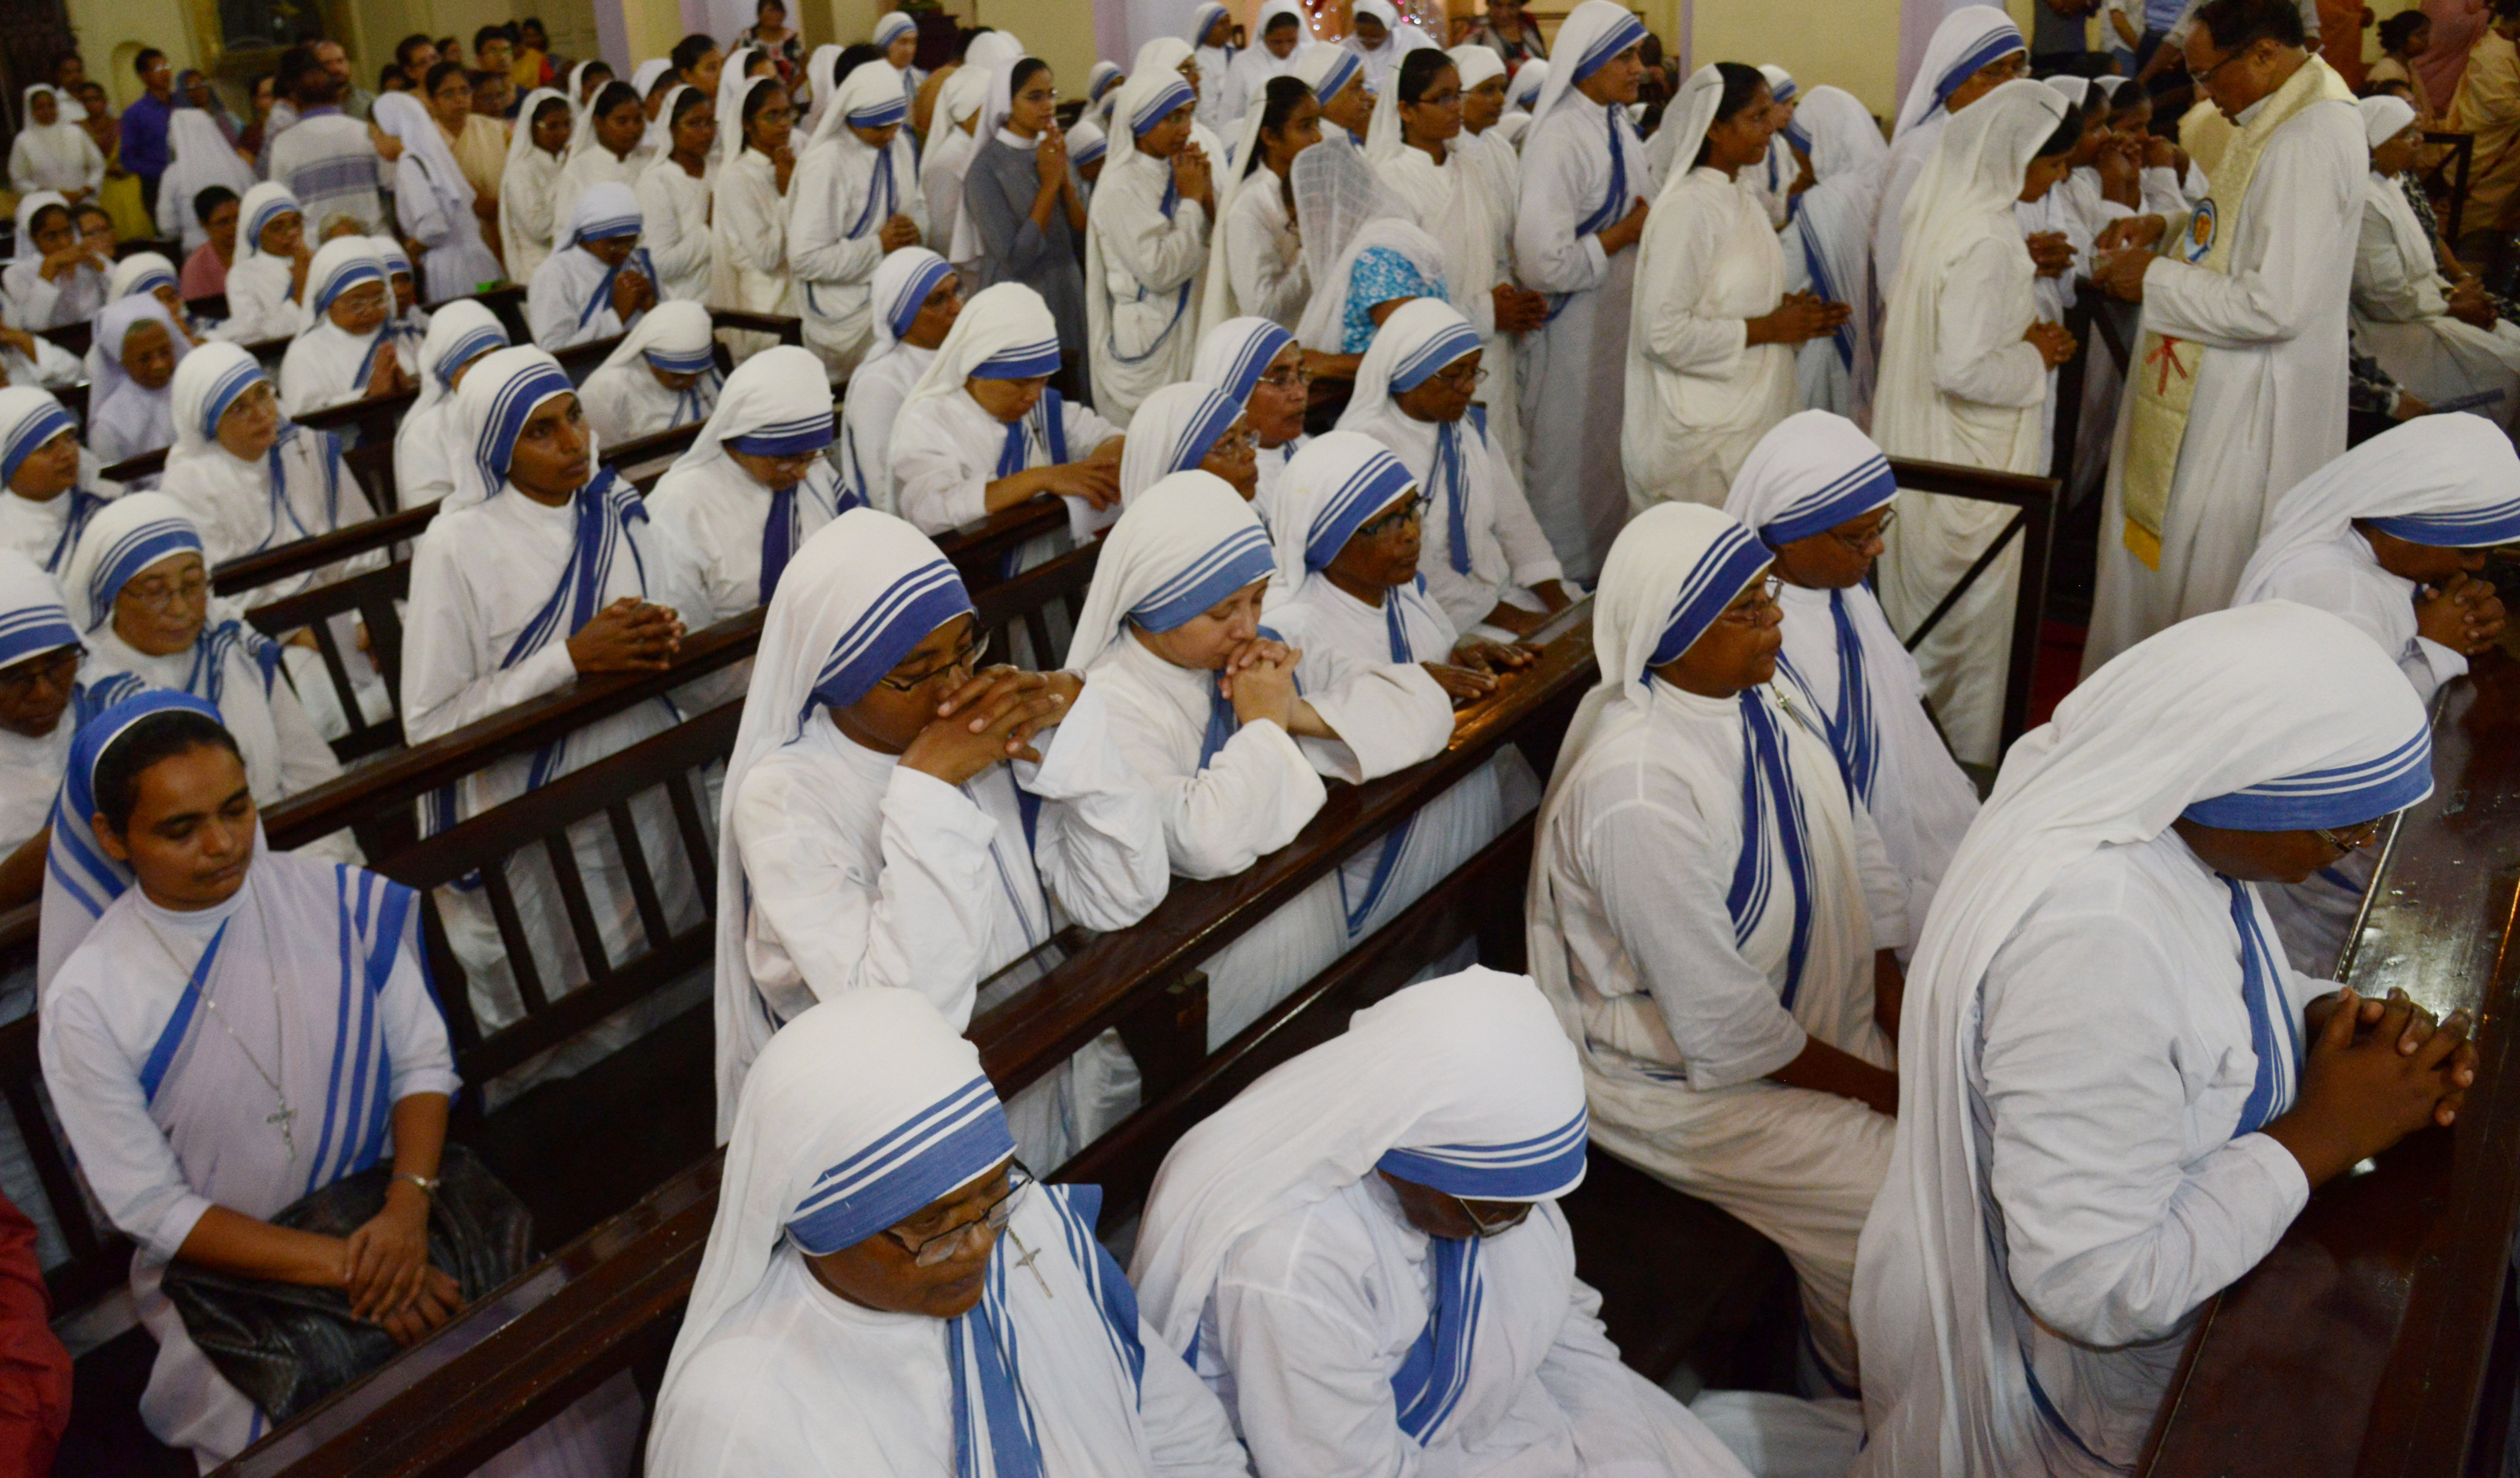 Indian Roman Catholic nuns of the Missionaries of Charity order attend a mass to announce St. Teresa of Calcutta a 'co-patron' of the archdiocese at the Cathedral of the Most Holy Rosary in Kolkata on September 6, 2017. (DIBYANGSHU SARKAR/AFP/Getty Images)